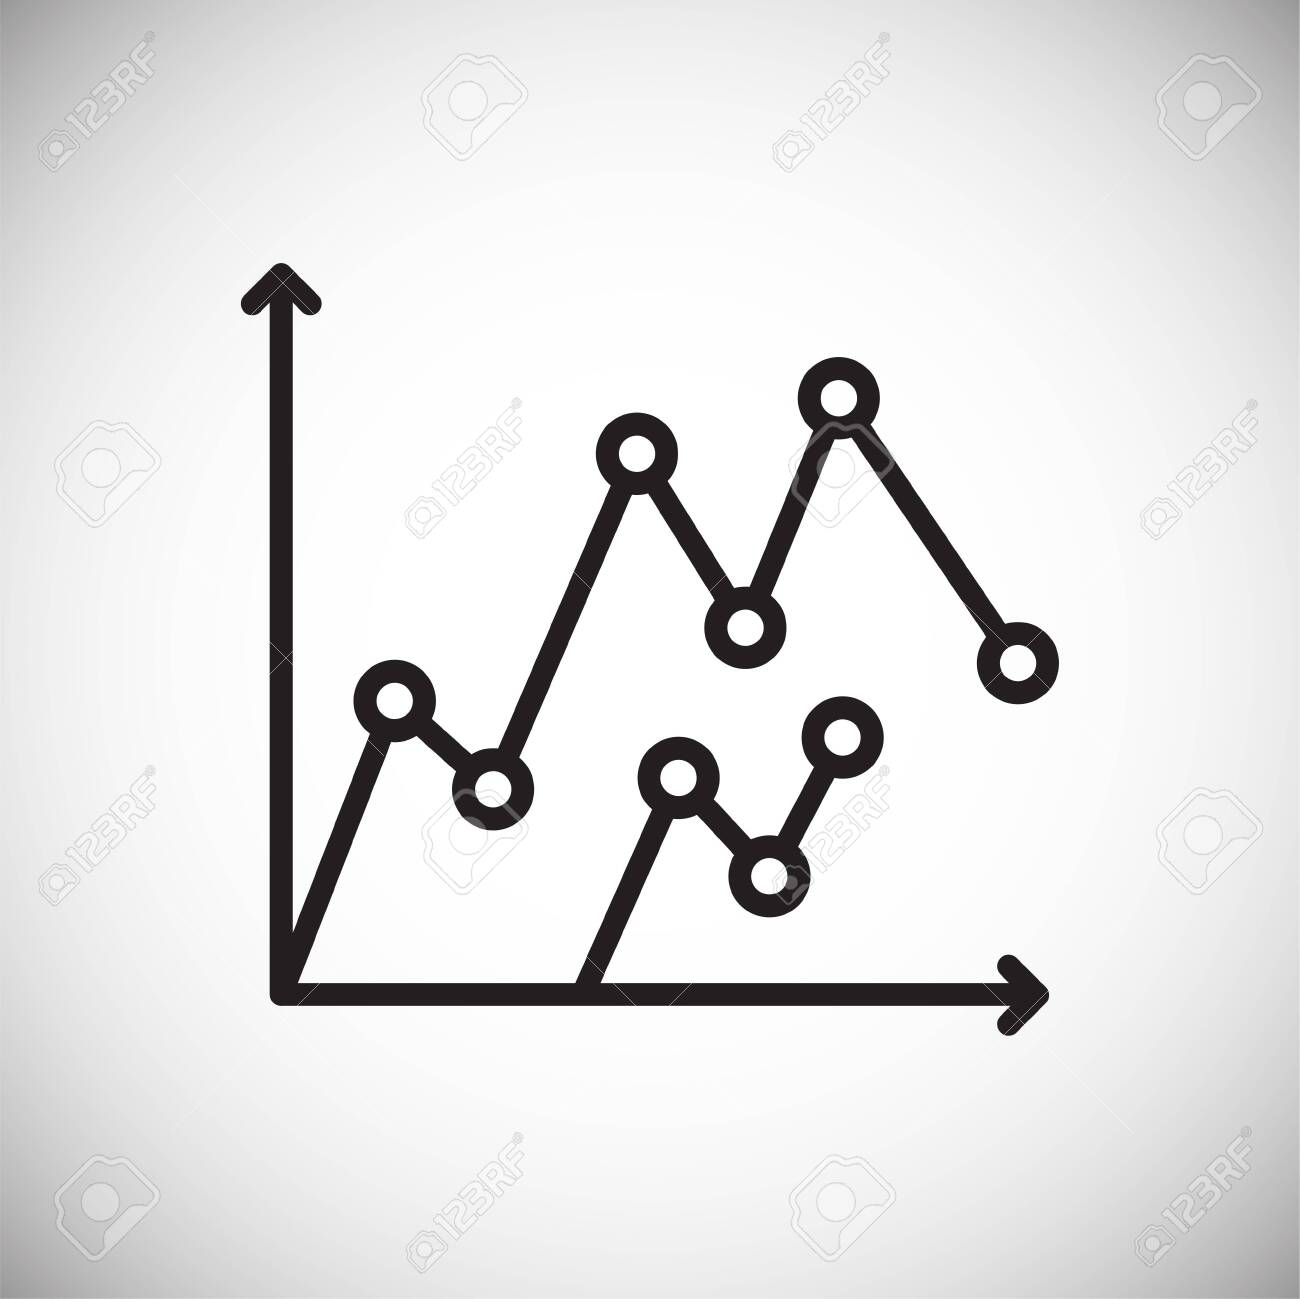 Graph line icon on background for graphic and web design. Simple vector sign. Internet concept symbol for website button or mobile app - 150727317